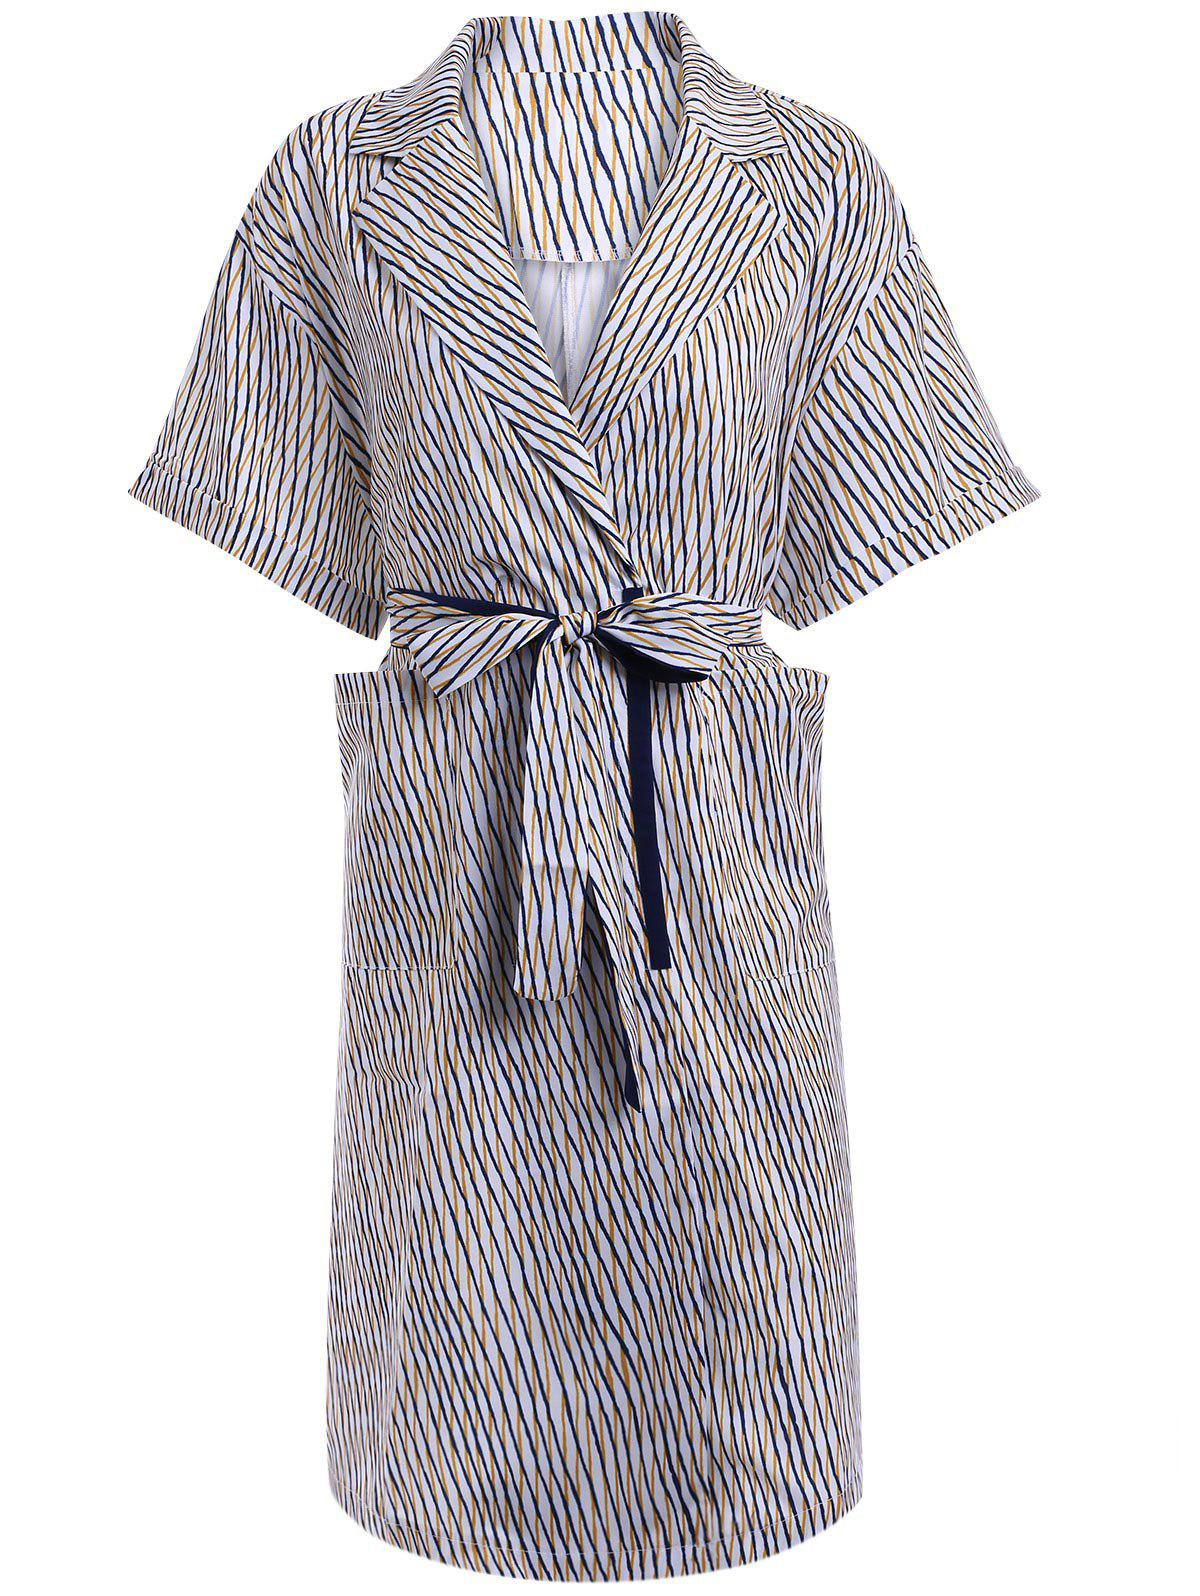 Street Stripe Short Sleeve Belted Shirt Dress For Women зеркало chrome 600 белое